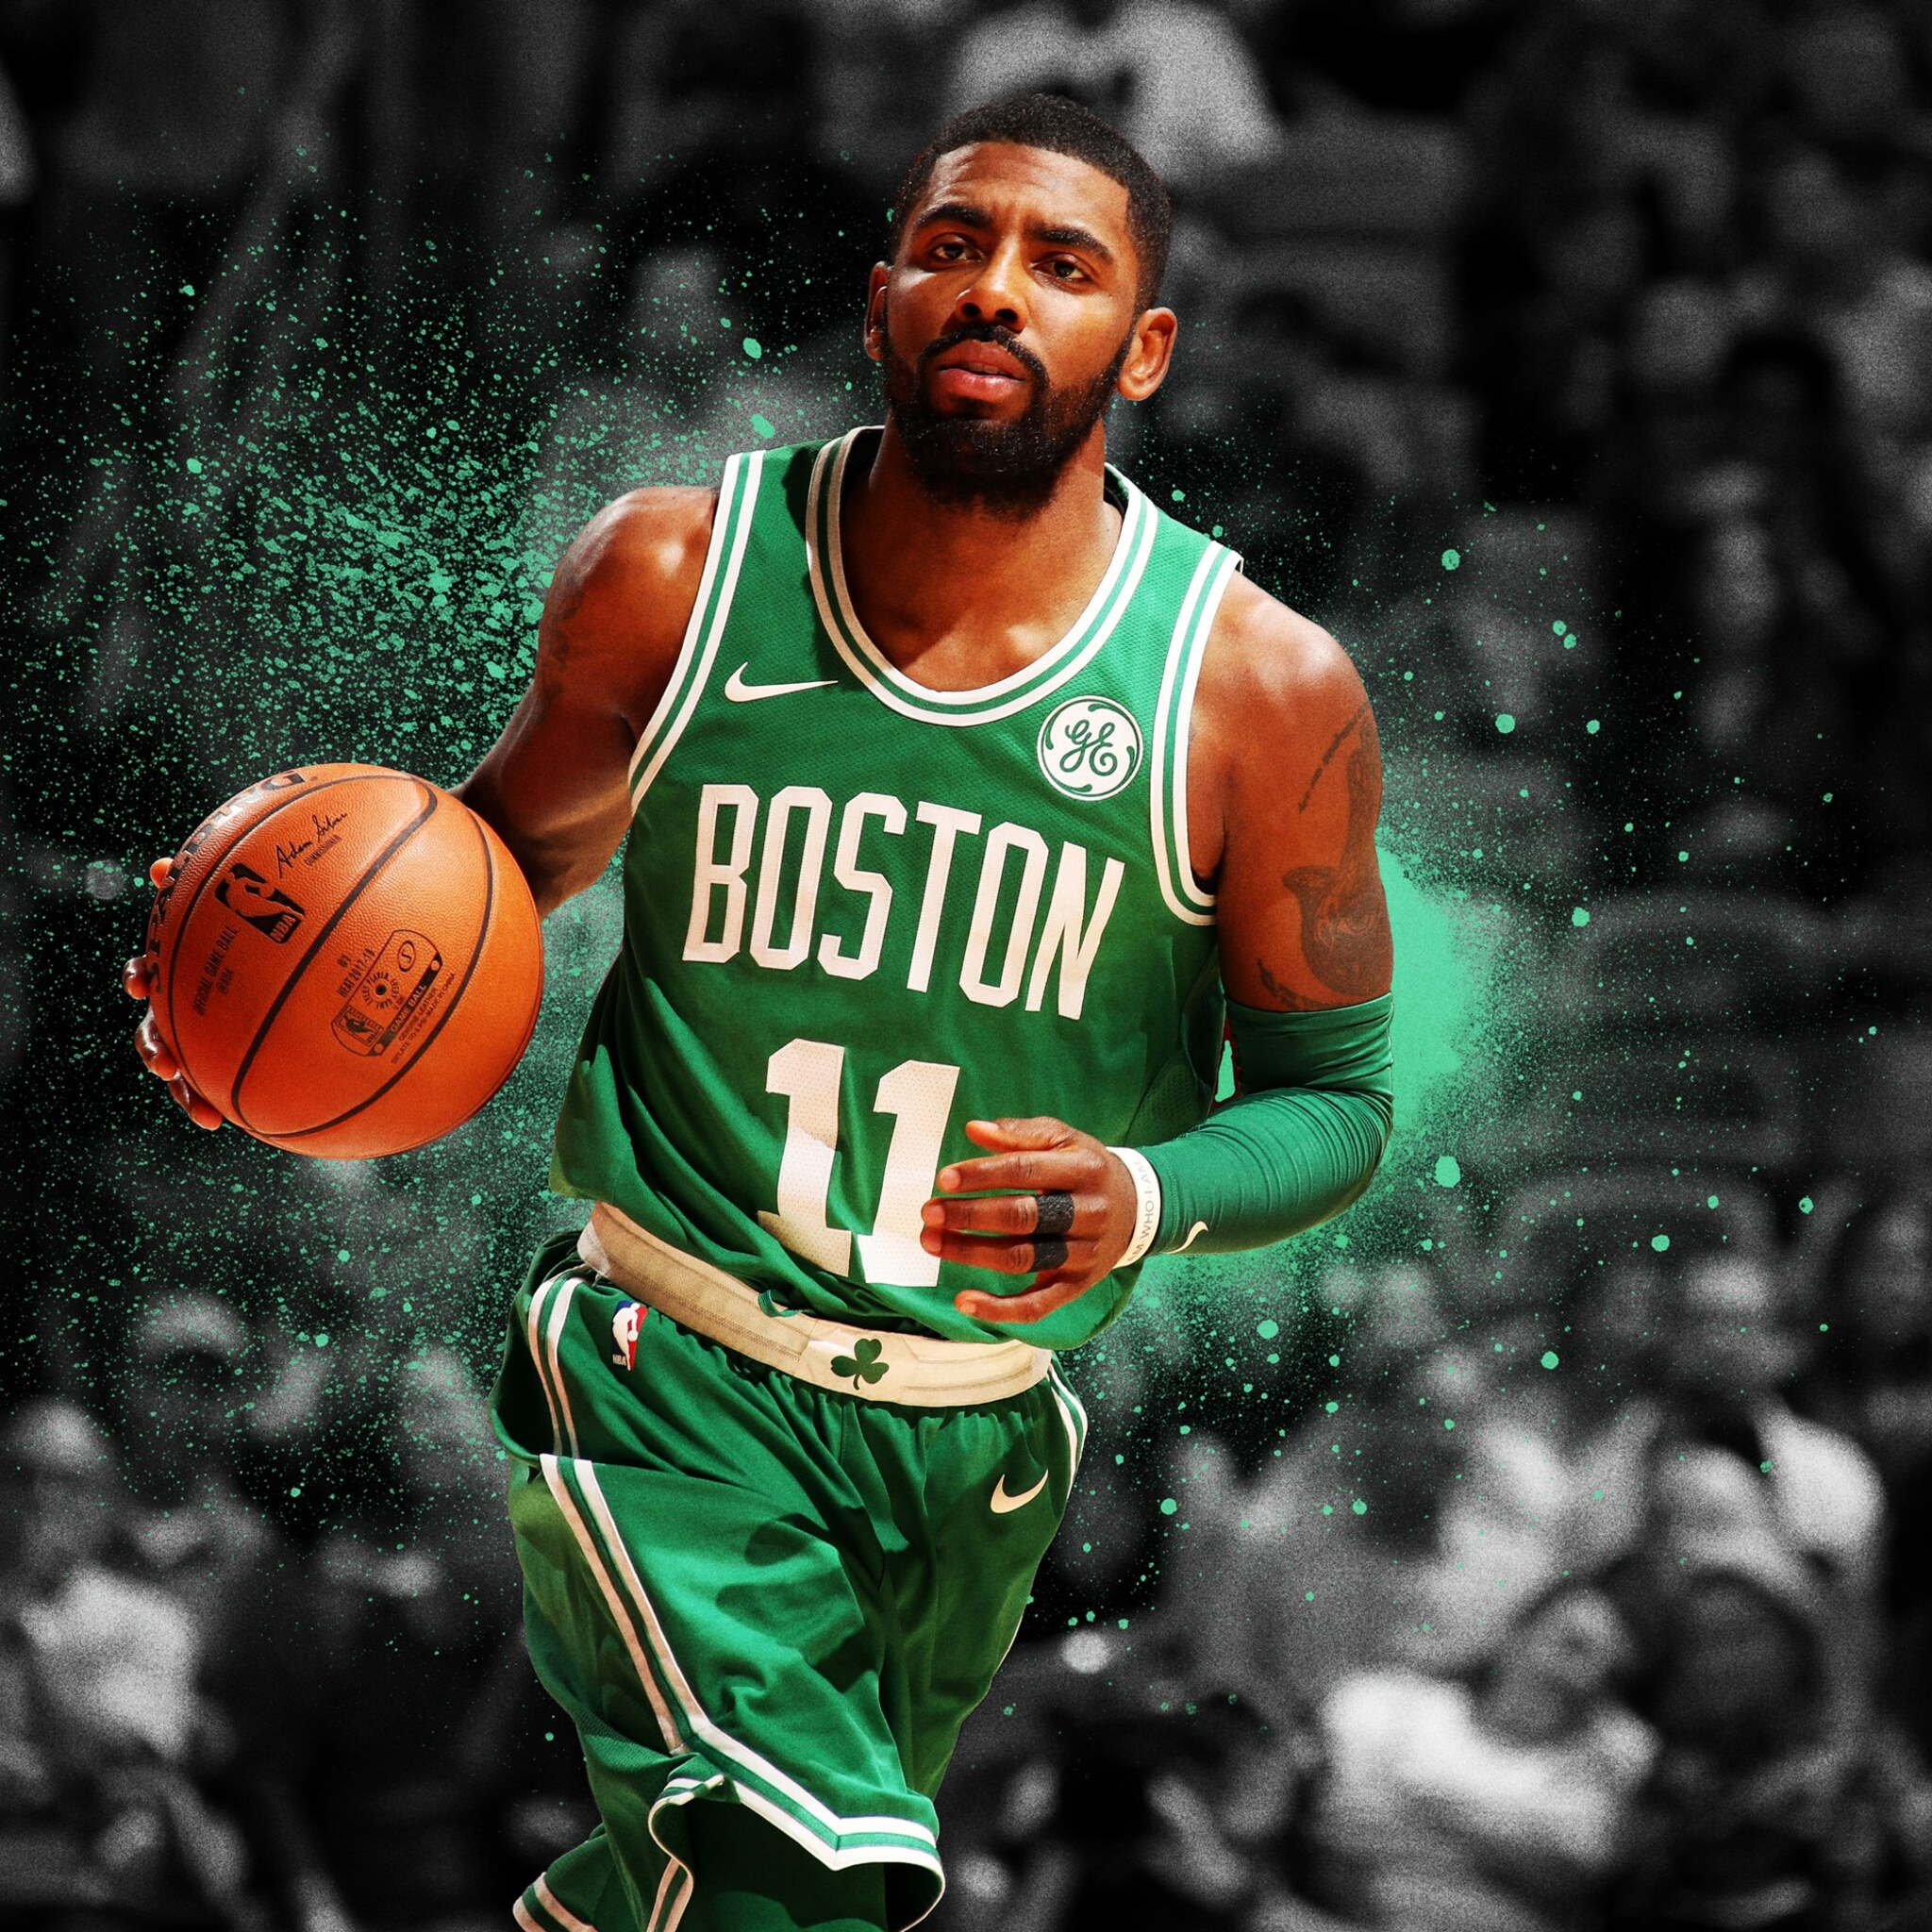 Kyrie Irving Wallpaper: 2048x2048 Kyrie Irving Ipad Air HD 4k Wallpapers, Images